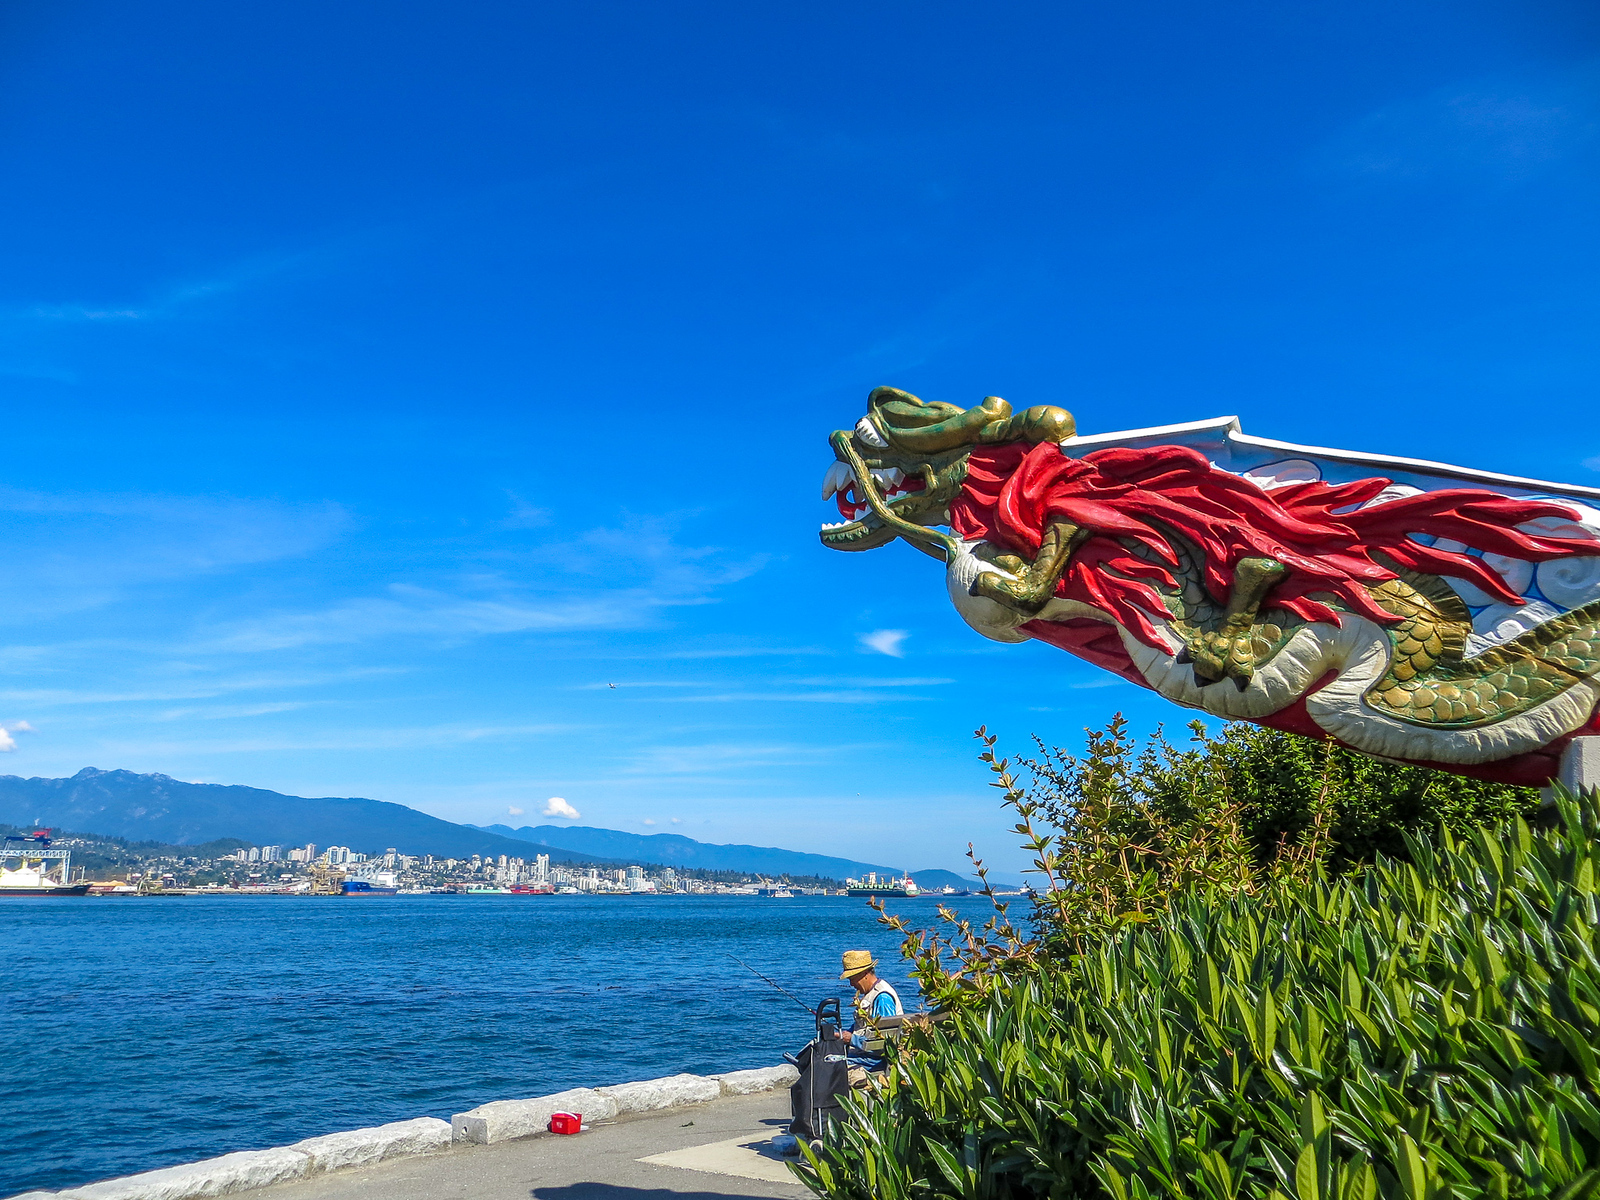 vancouver in 48 hours is a wonderful trip